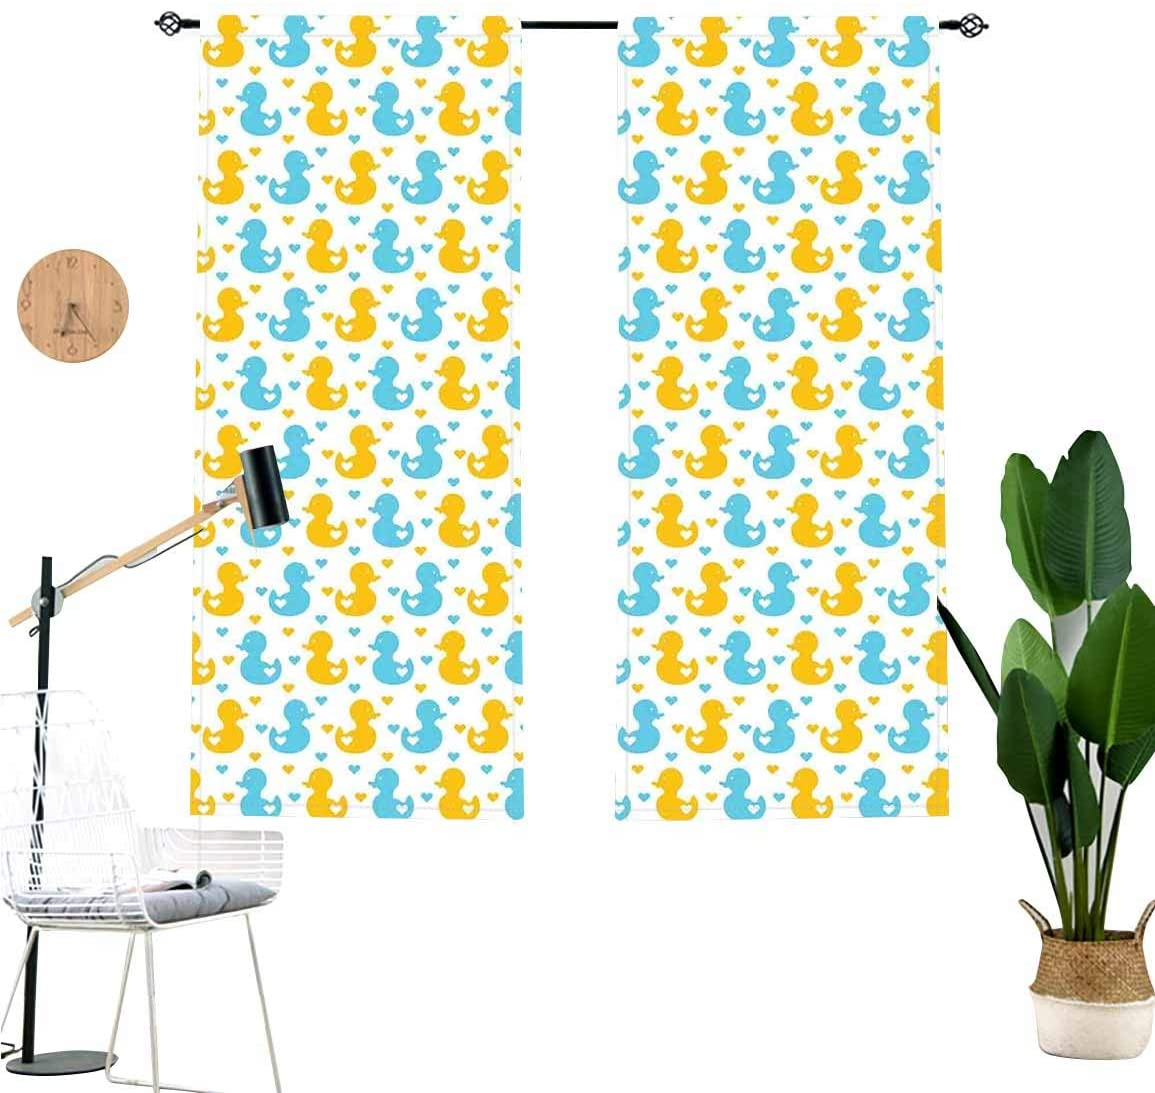 Rubber Duck Sound Blocking Curtains,Baby Ducklings with Little Hearts Love Animals Nursery Room Window Treatments for Sliding Glass Doors,2 Panel Set,W42 x L36 Each Panel